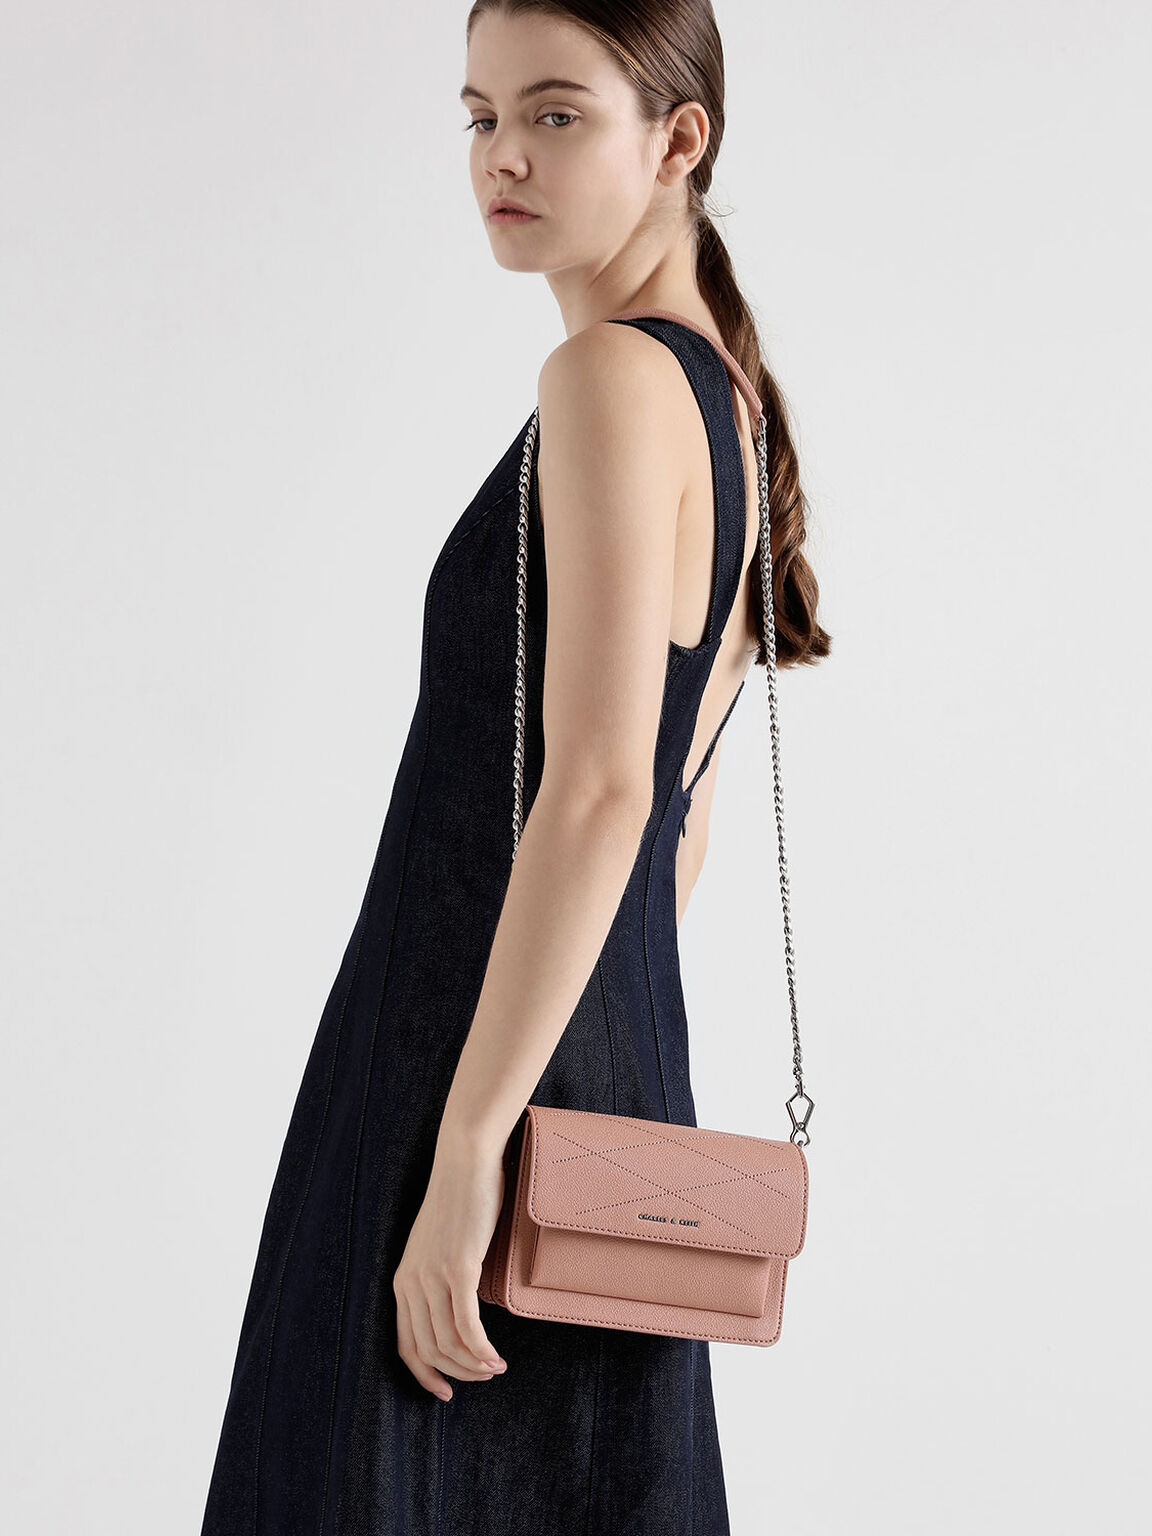 Top Stitch Detail Crossbody Bag, Pink, hi-res